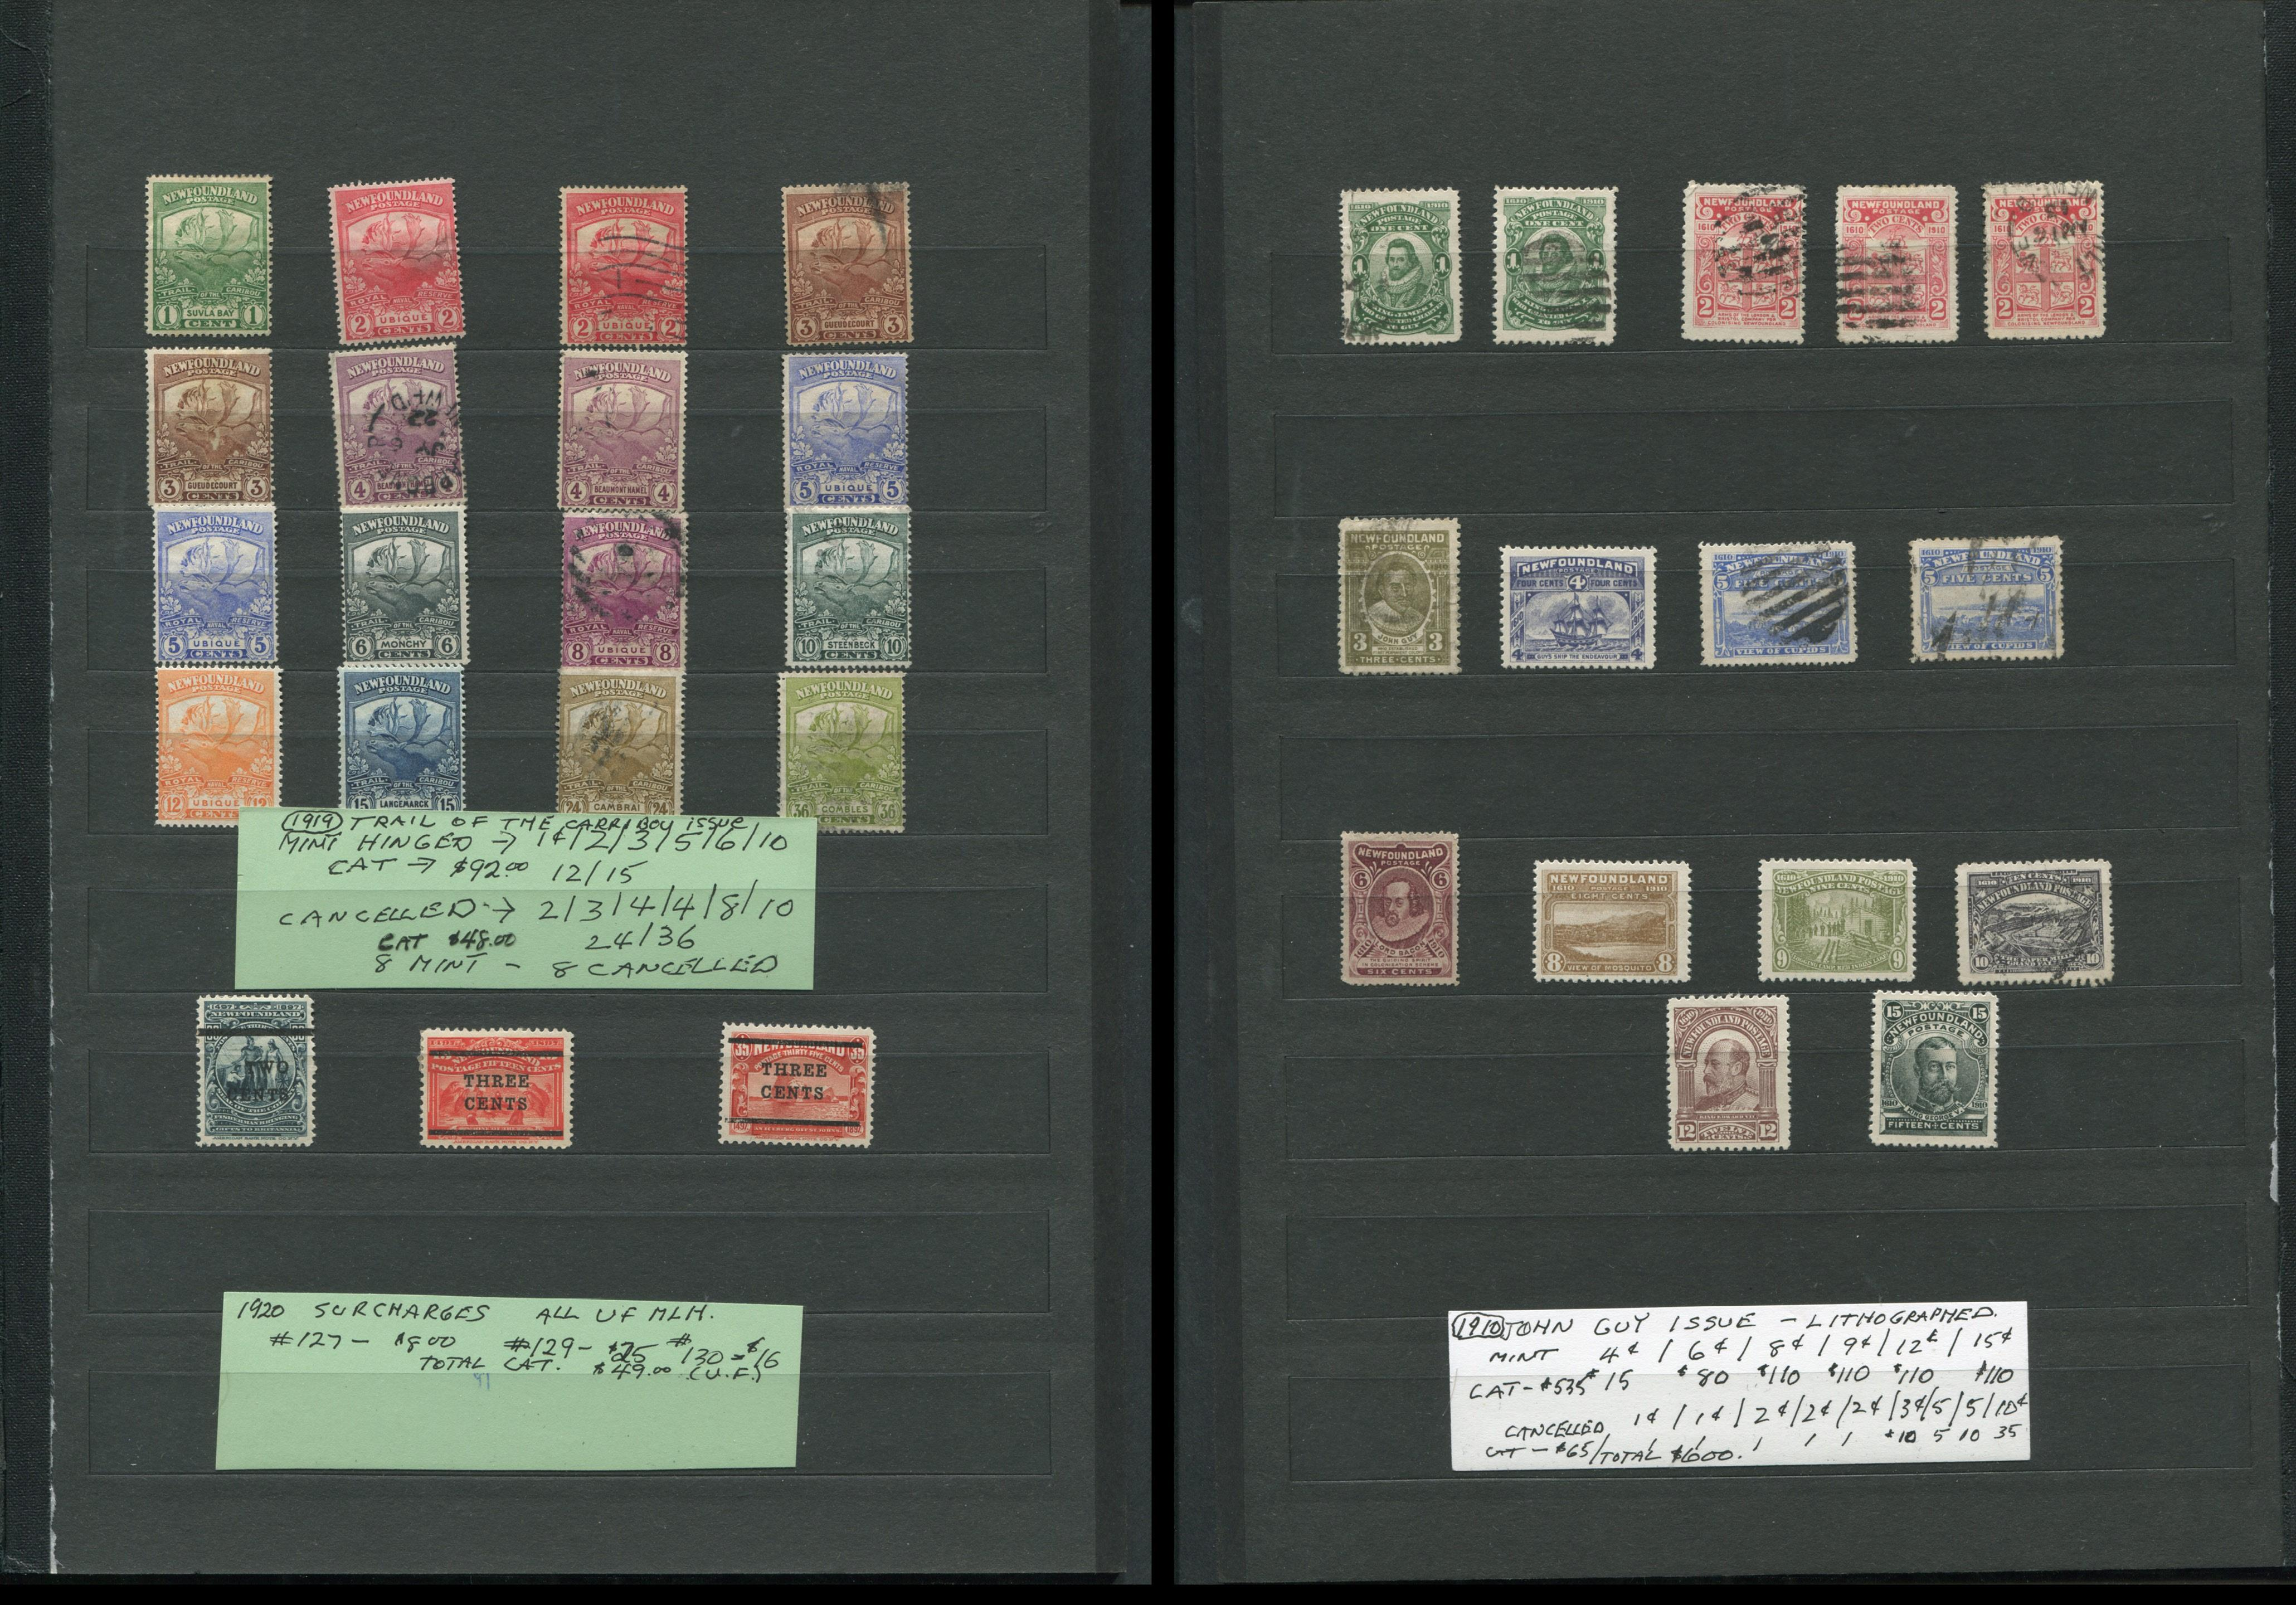 Canada Newfoundland Stamp Collection (34 Stamps) 1910, 1919, 1920